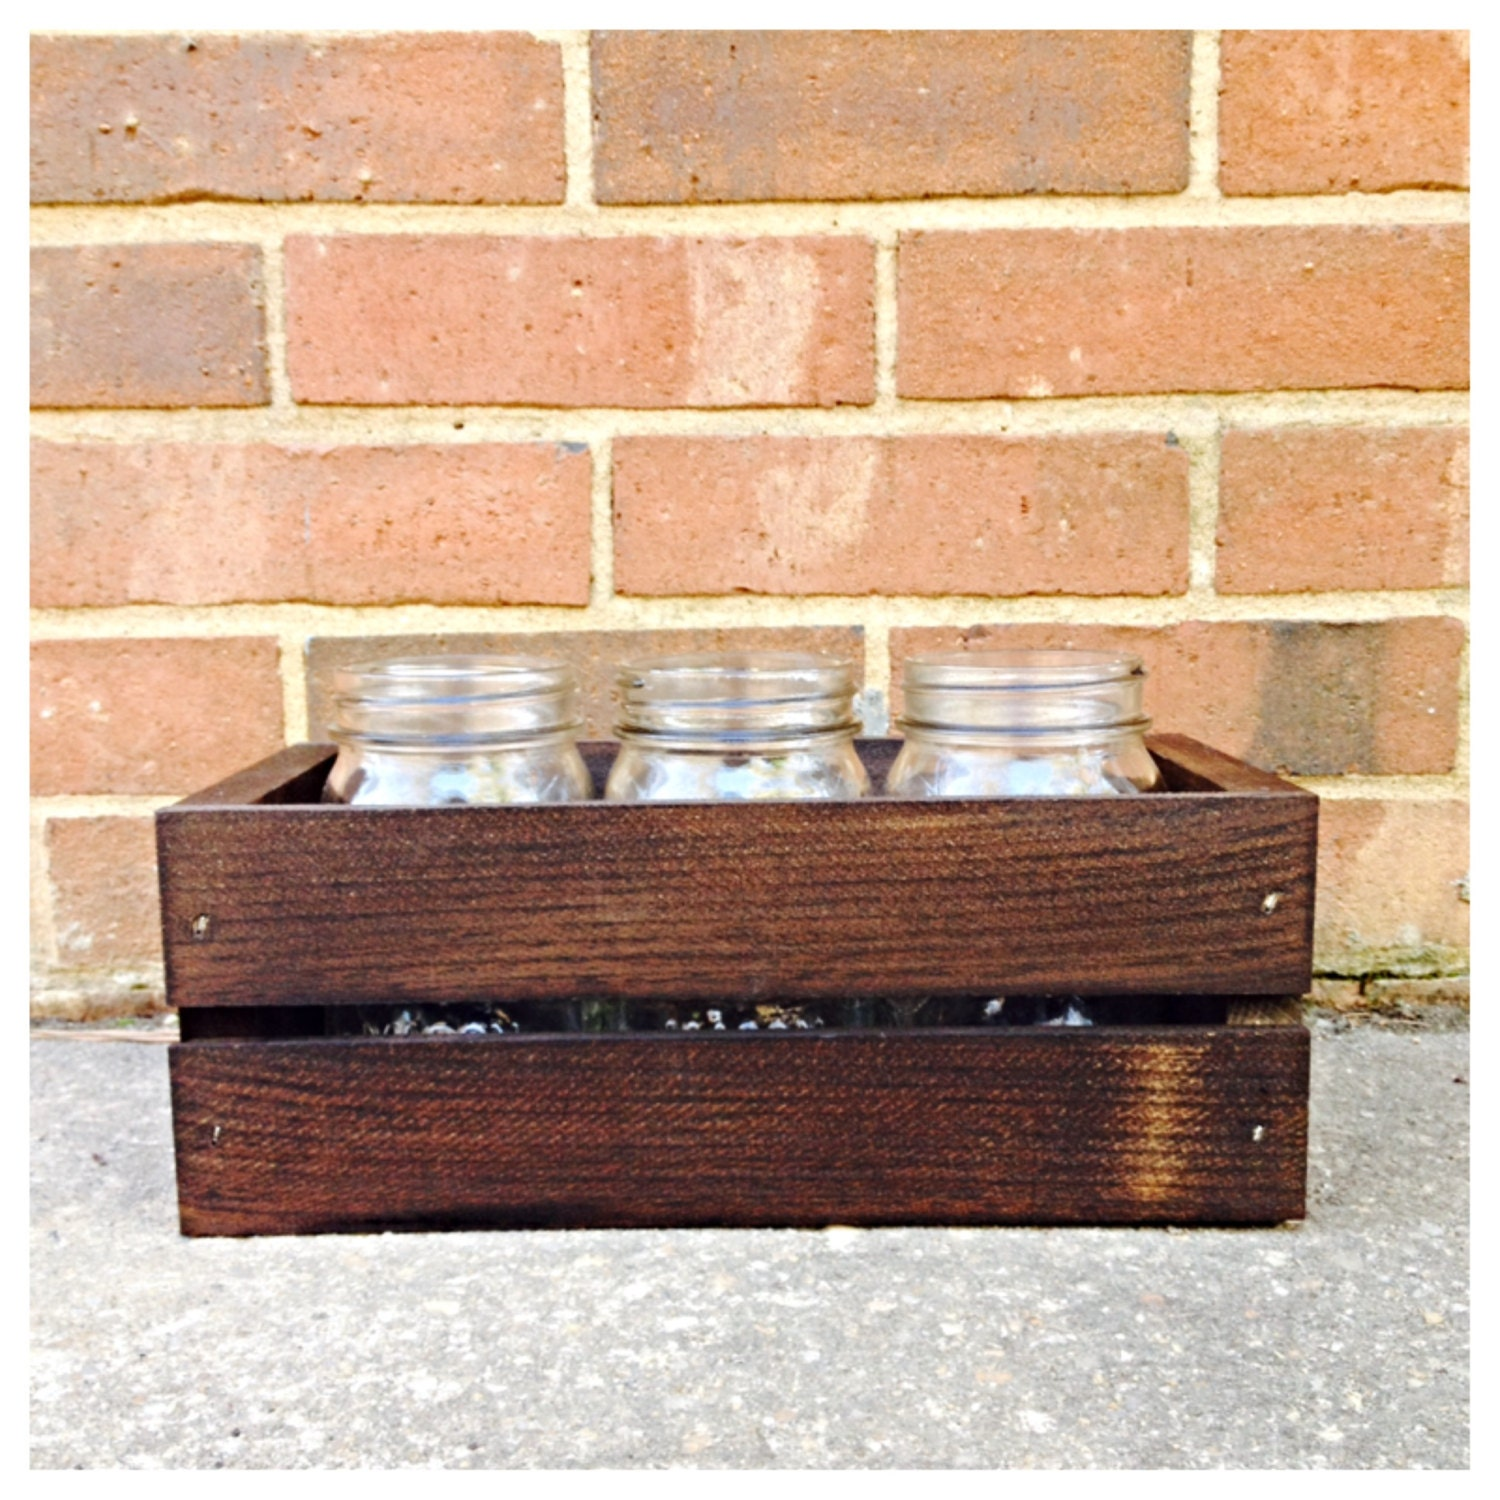 Wooden crate centerpiece for rustic wedding or by